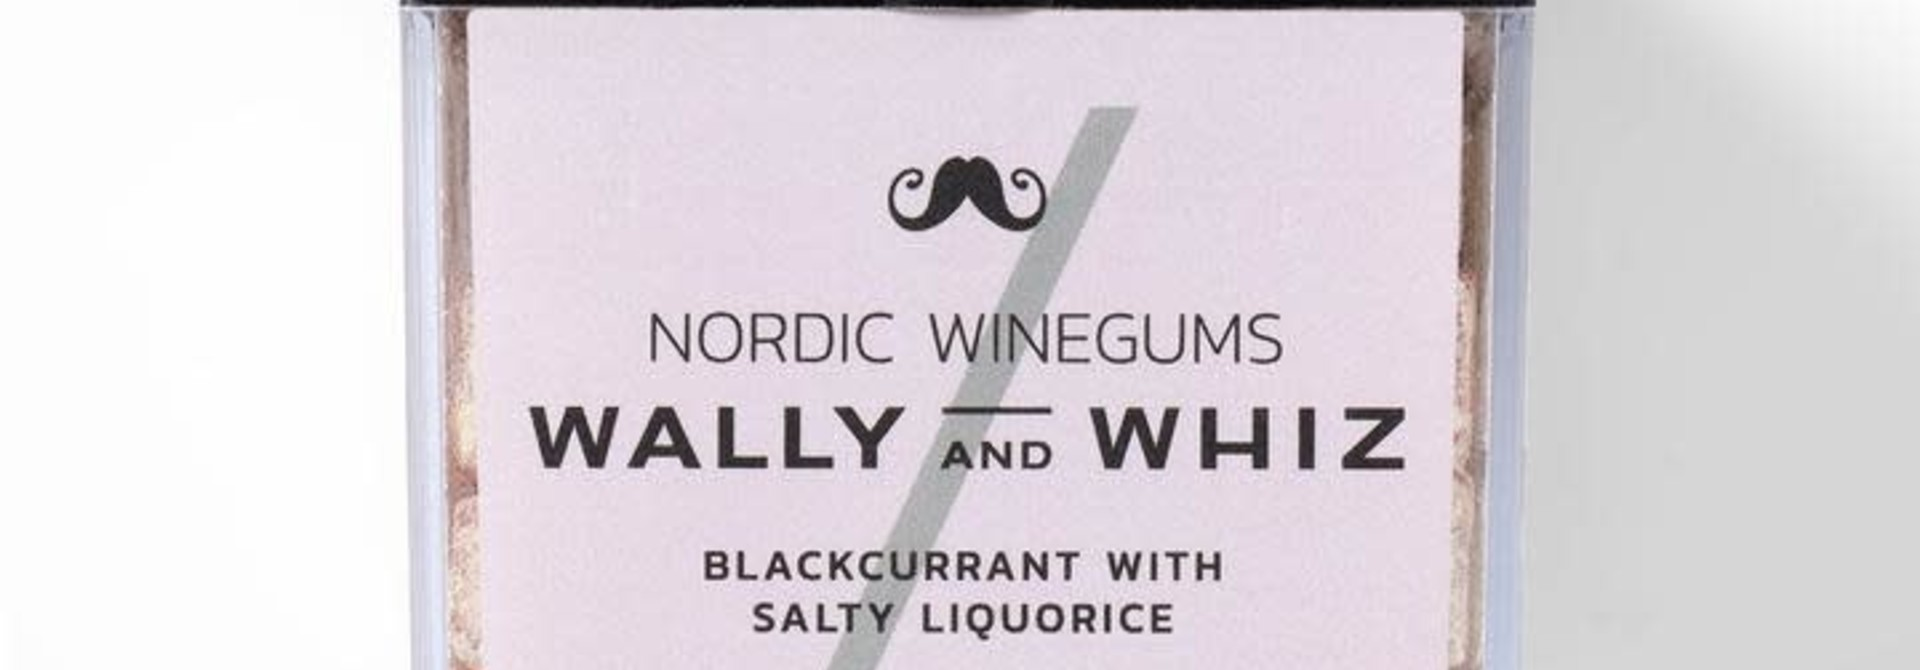 Blackcurrant with Salty Liquorice